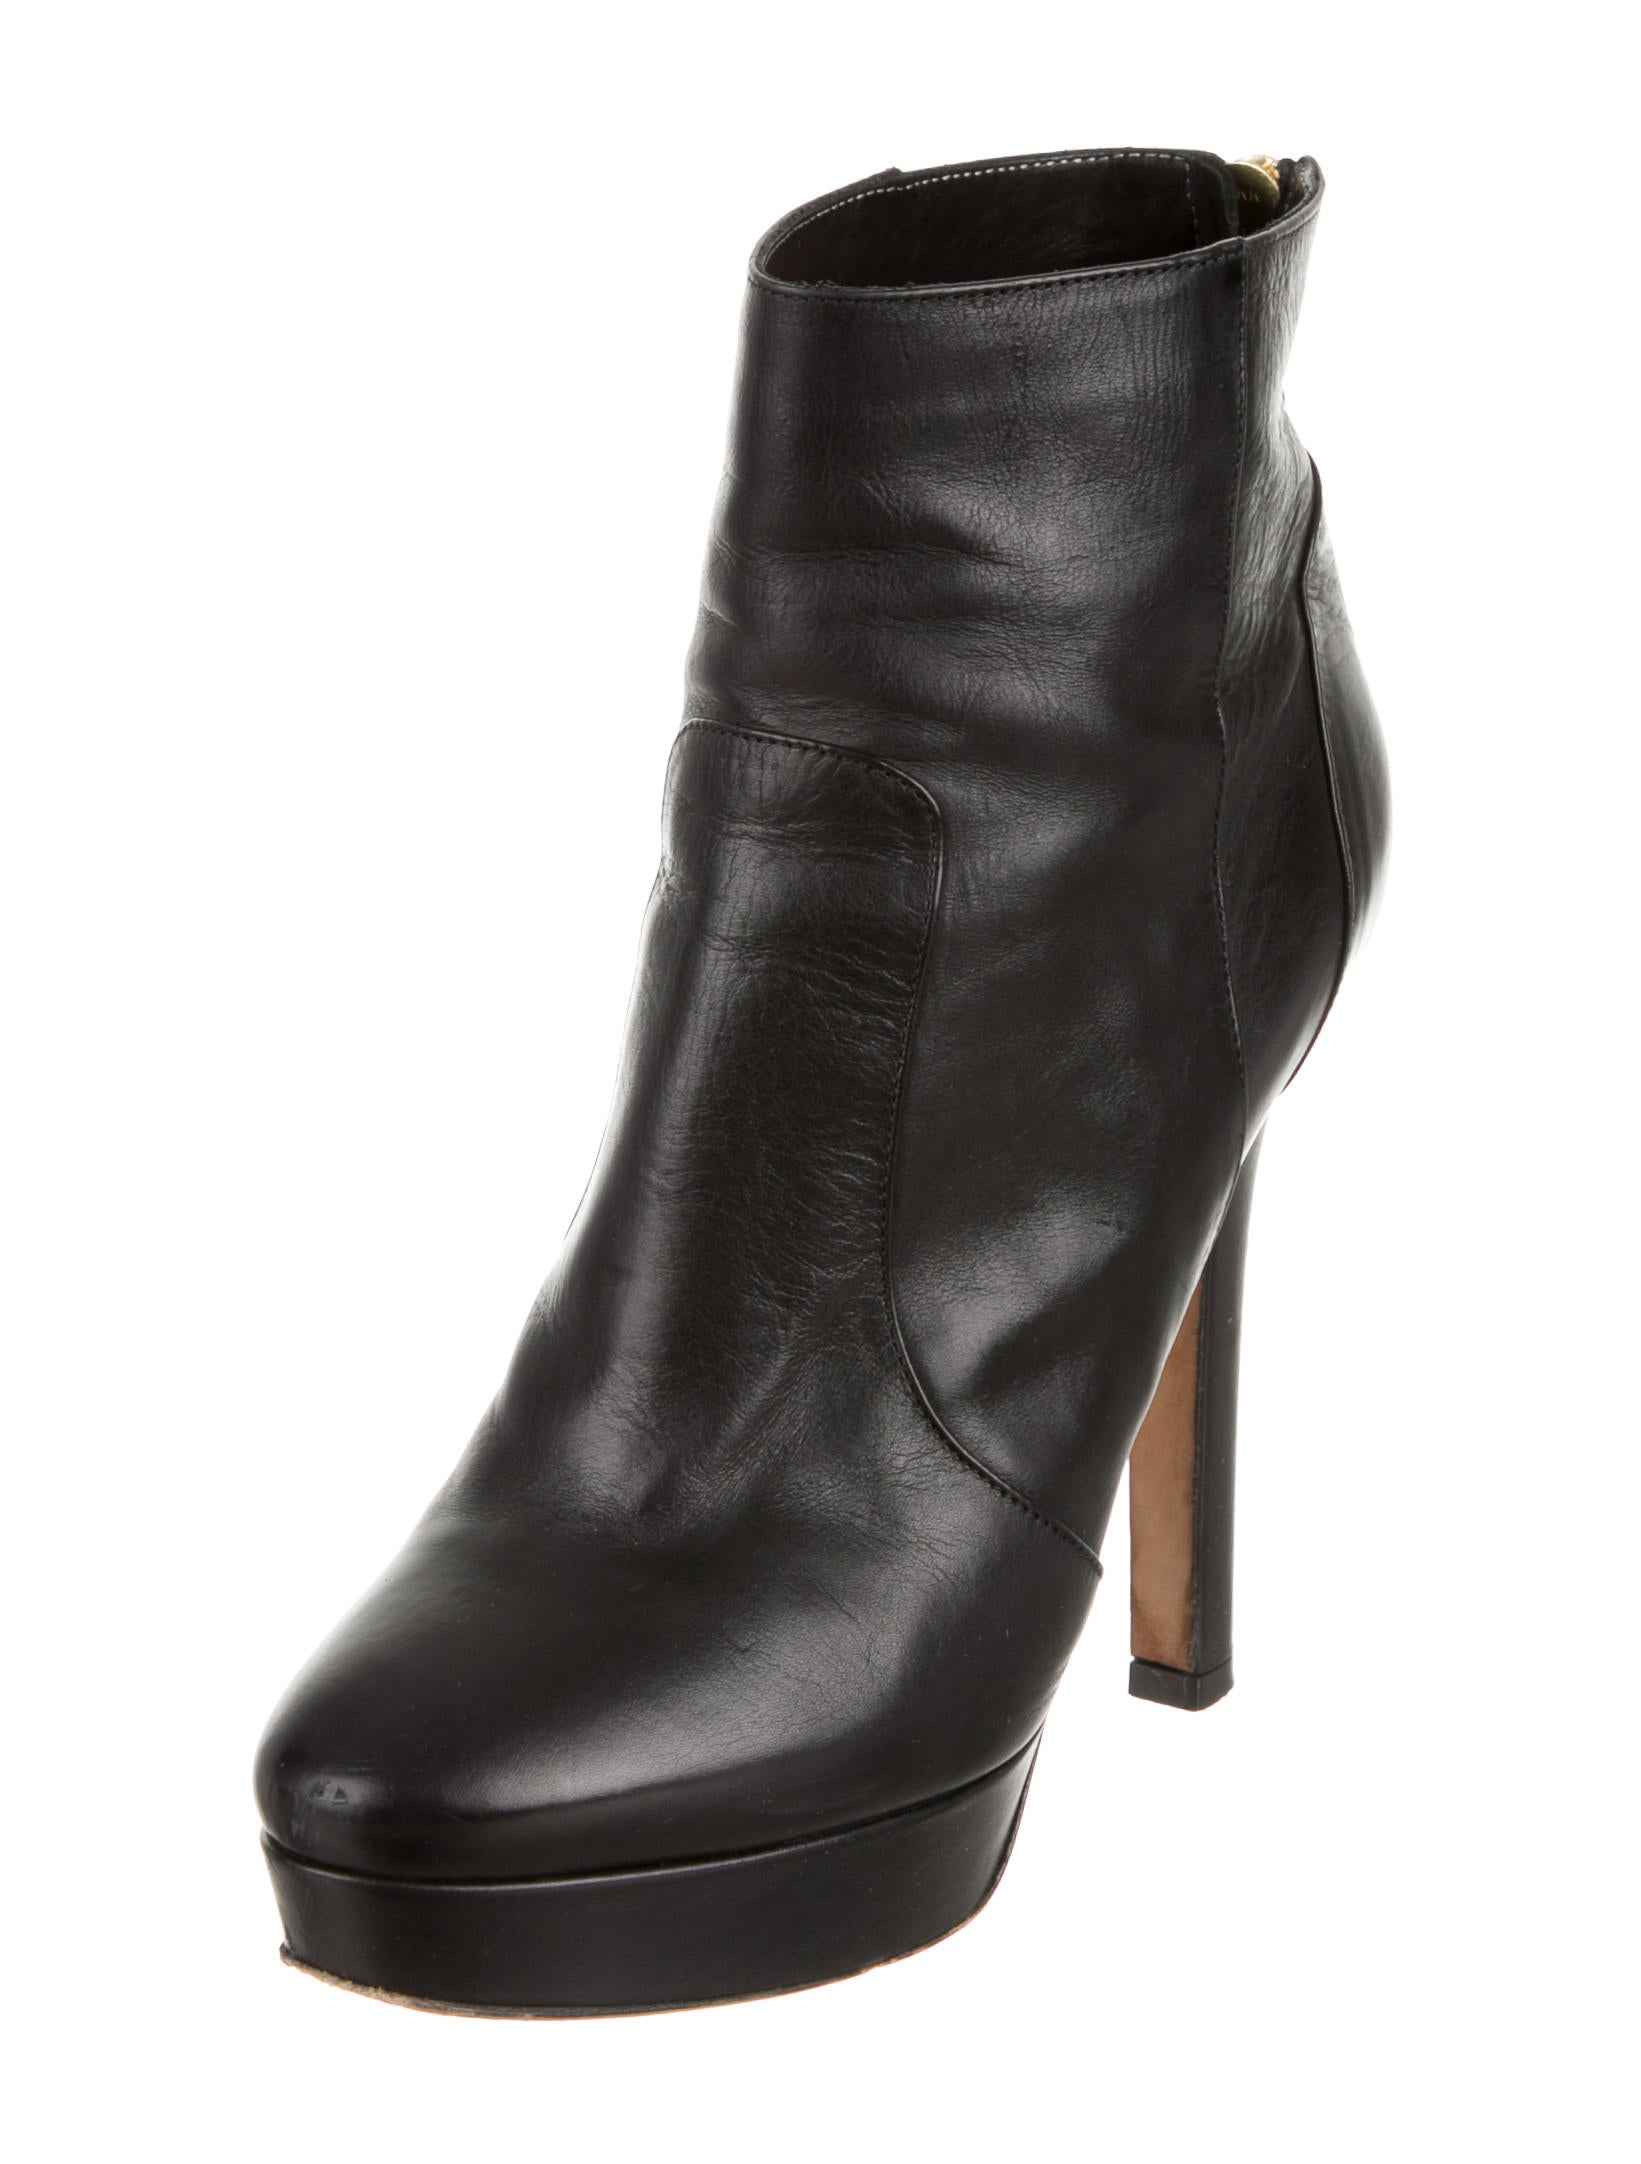 jimmy choo leather platform ankle boots shoes jim41179